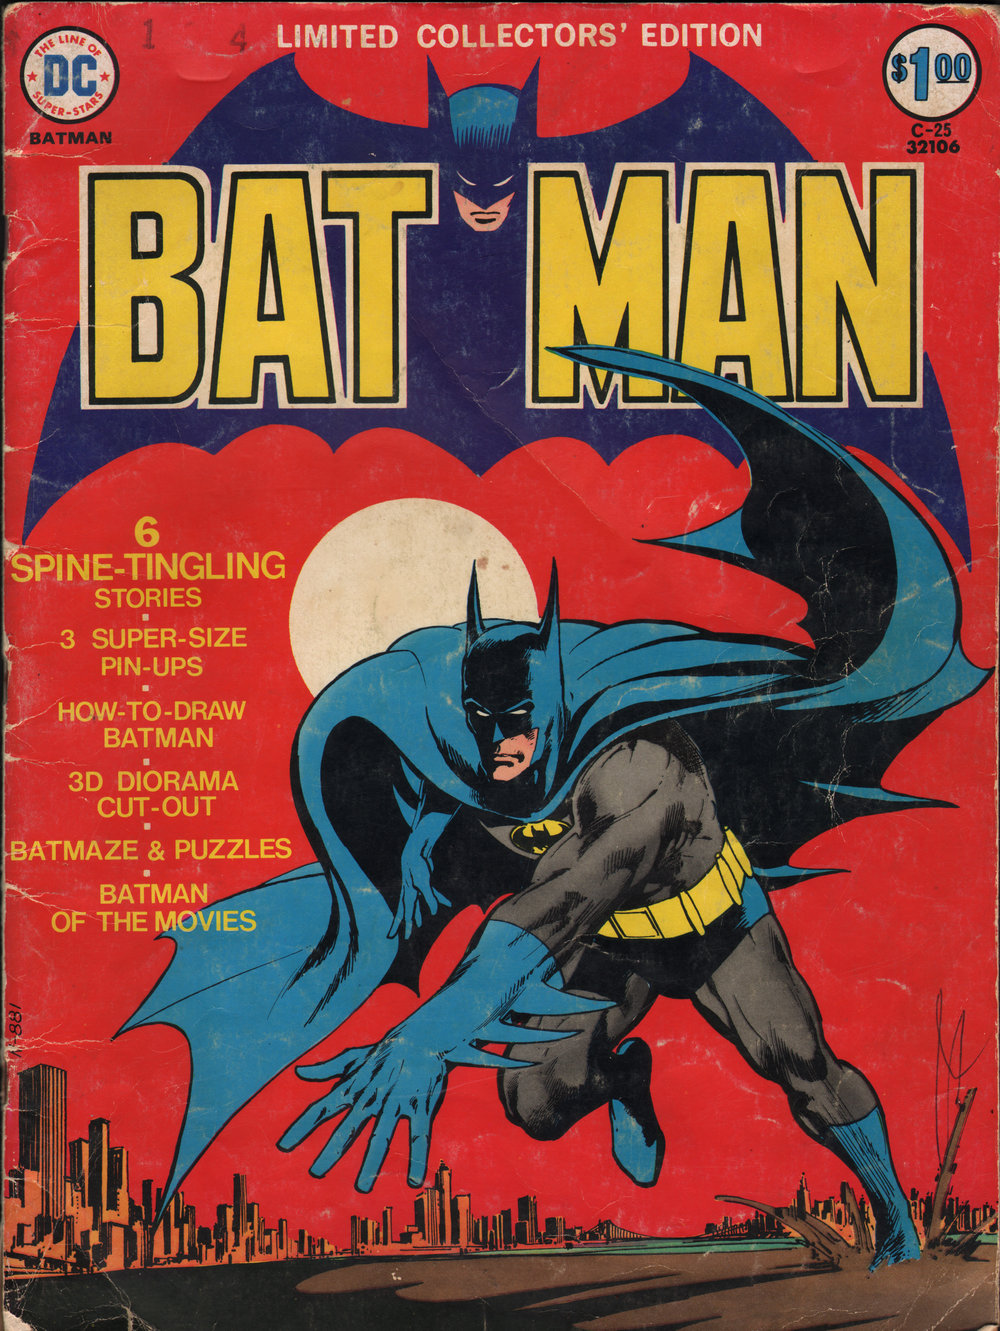 BATMAN TABLOID - 000.jpg